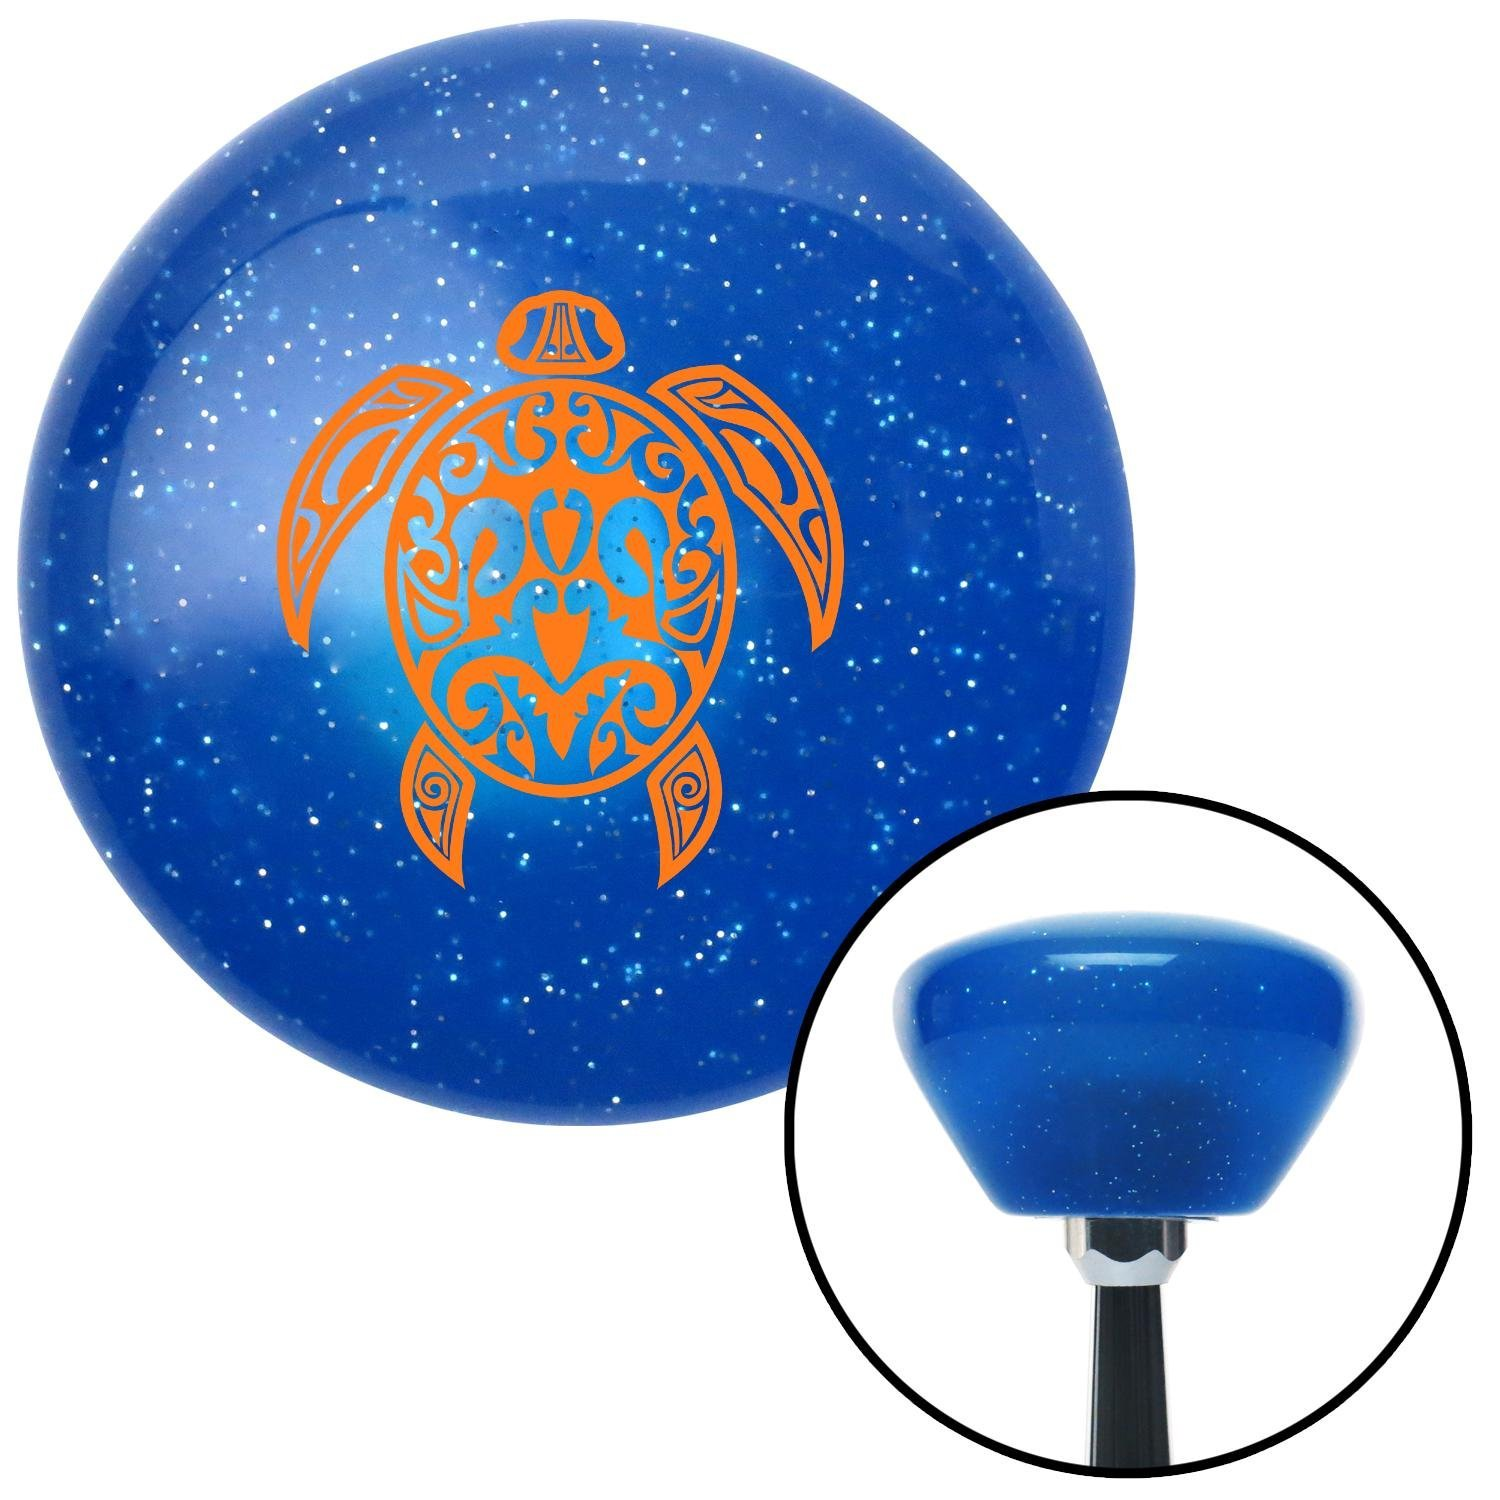 Orange Giant Turtle American Shifter 190050 Blue Retro Metal Flake Shift Knob with M16 x 1.5 Insert